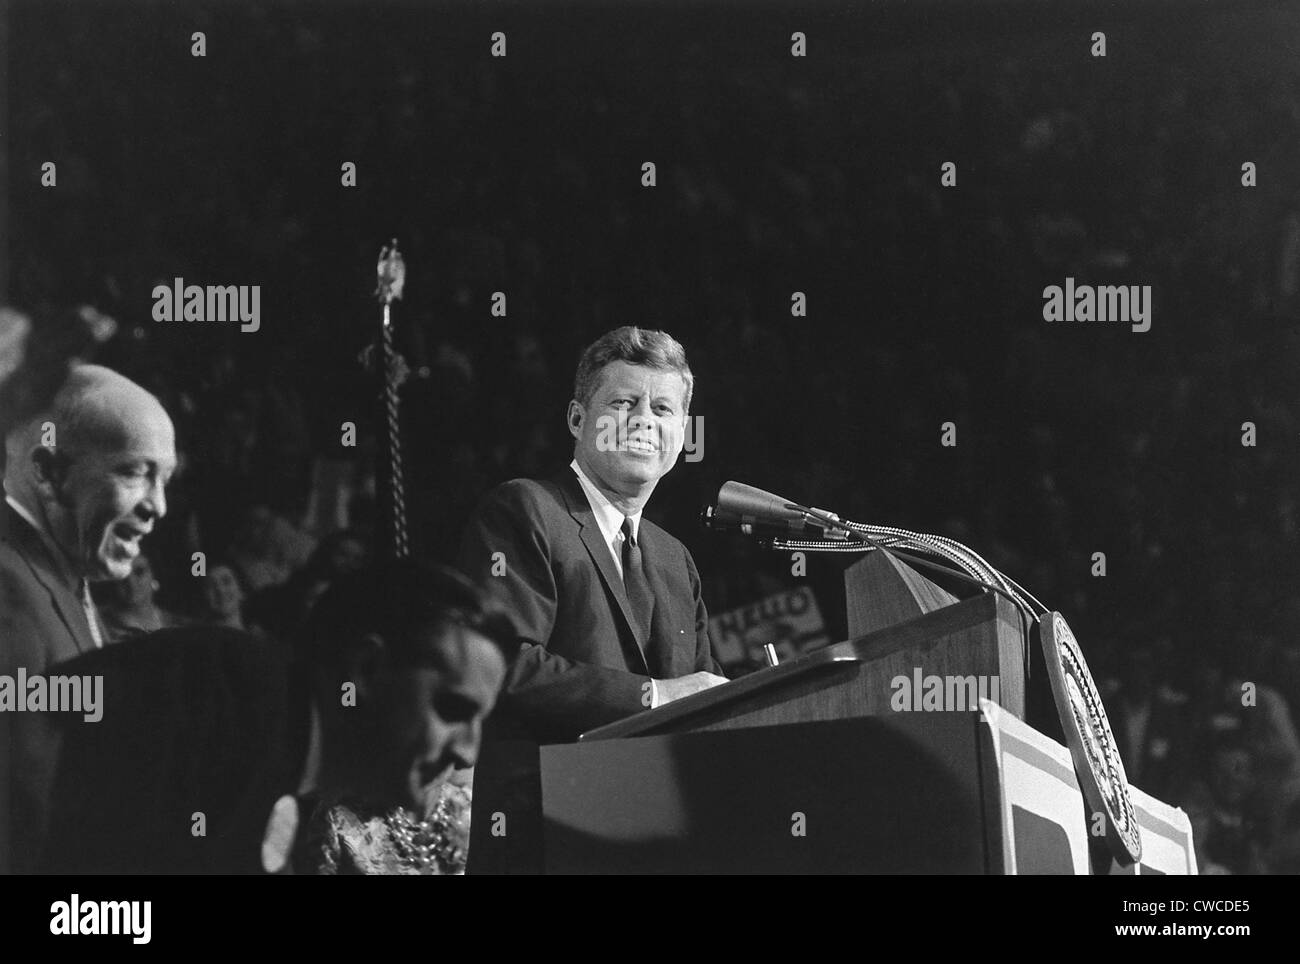 President Kennedy speaks at 'Bean Feed' on Oct. 6, 1962. Minnesota's 'Democratic-Farmer-Labor party'(DFL) - Stock Image